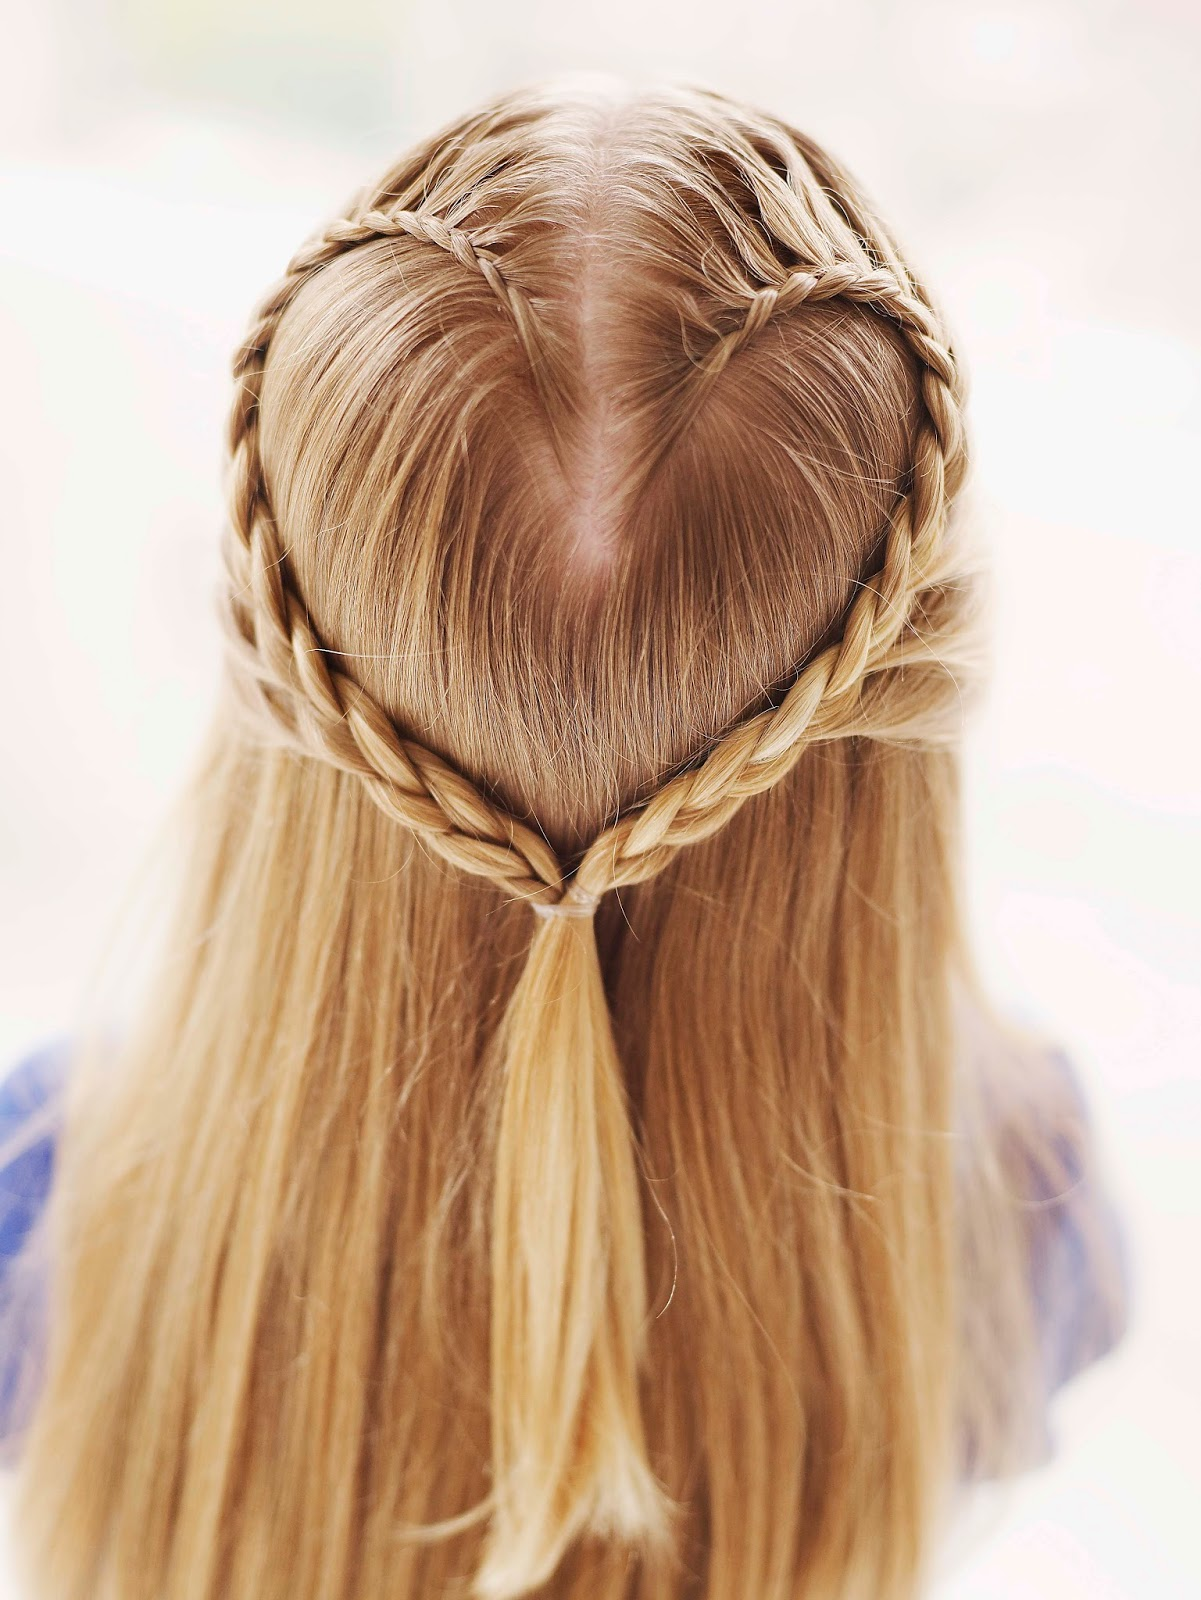 Long Hair Tumblr Hairstyles For Long Hair Tumblr Easy